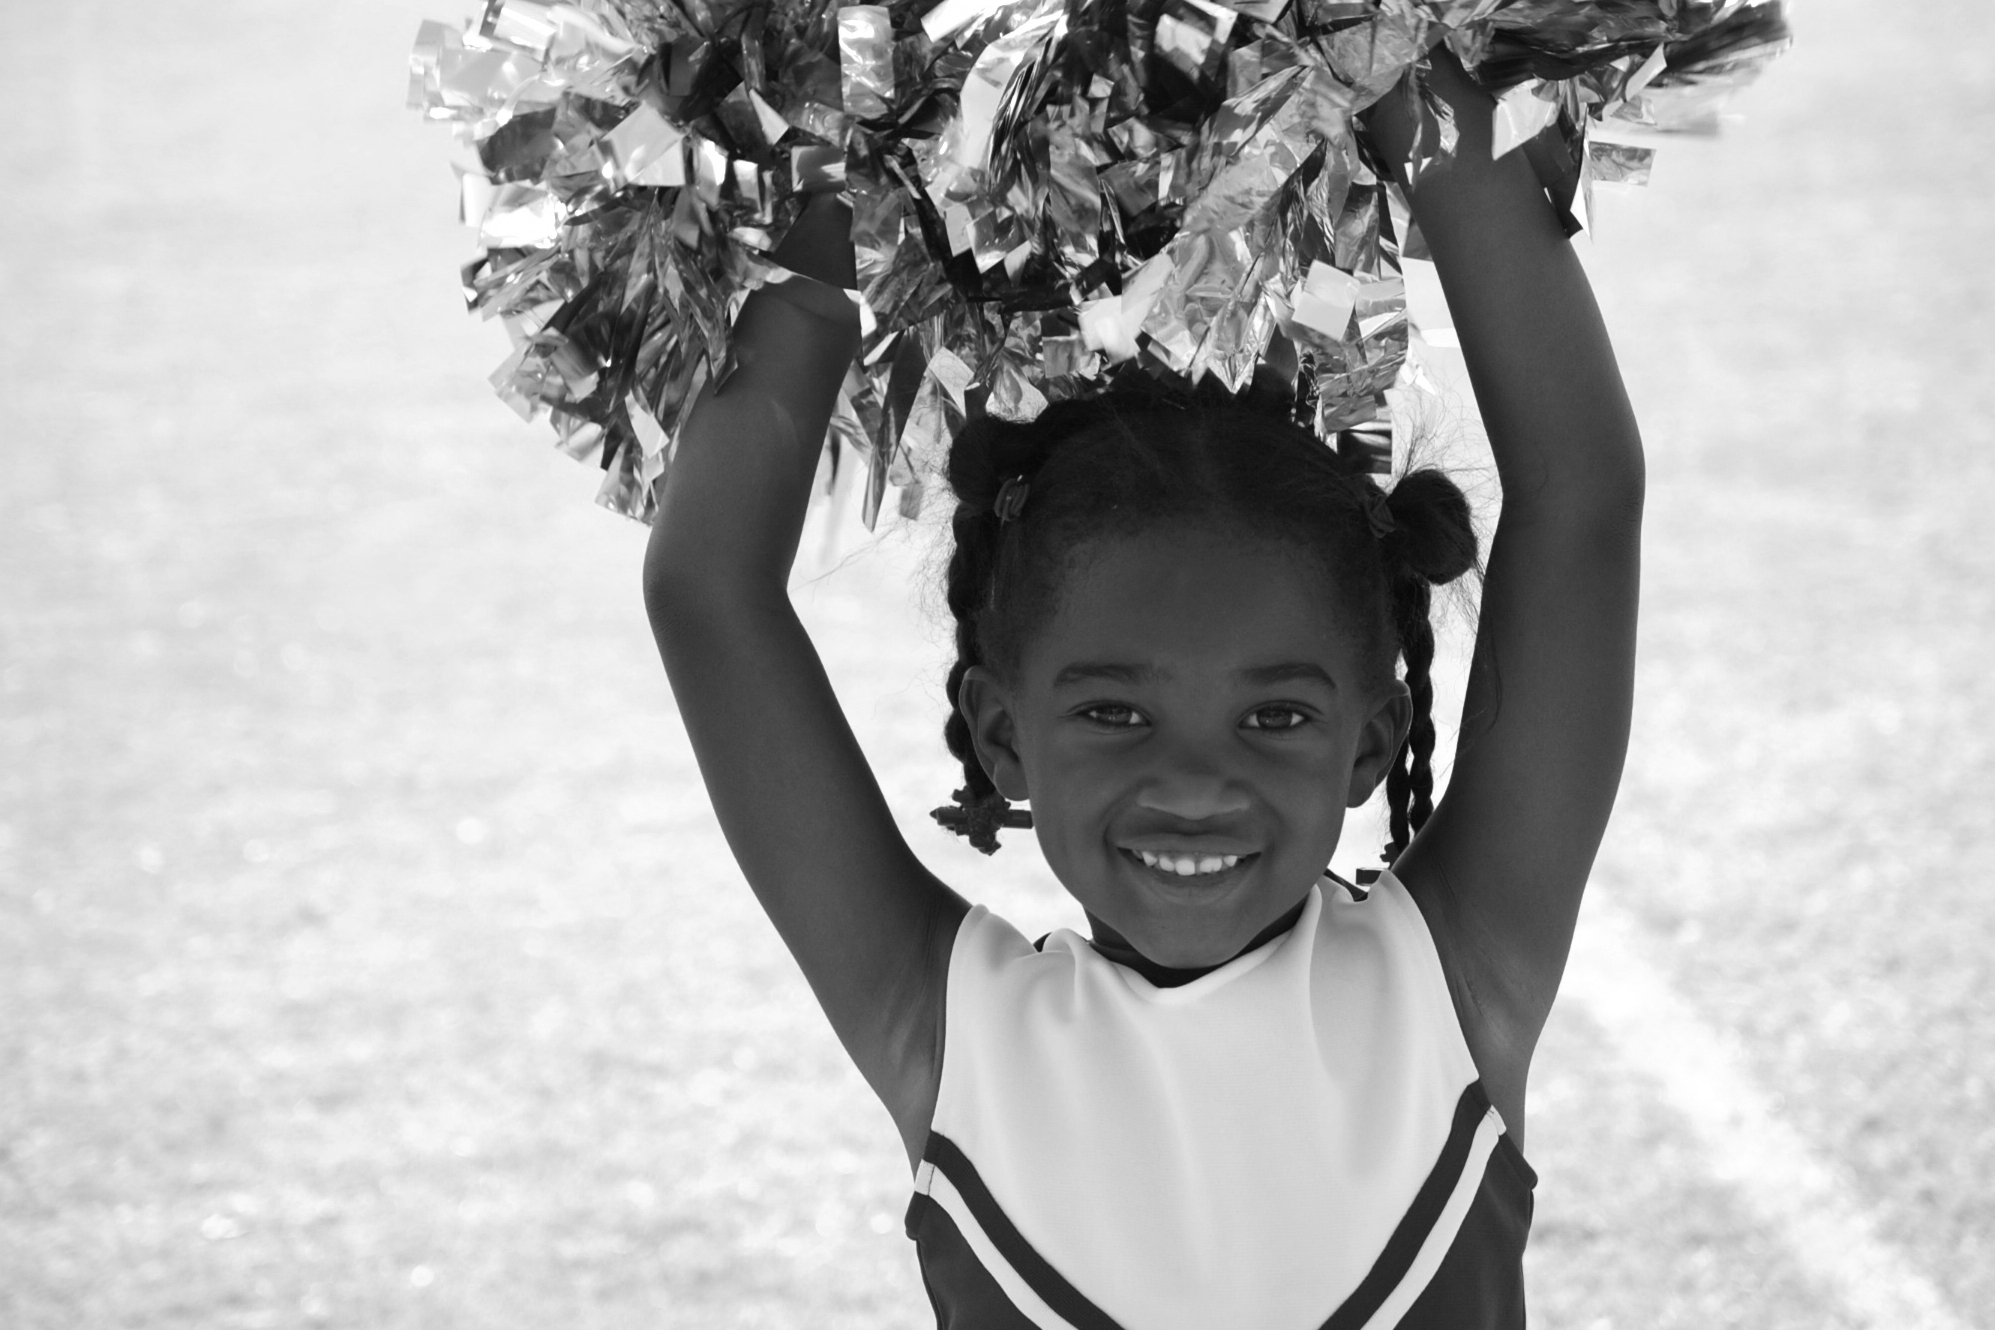 2006 - Between 2003 and 2006, the organization quickly grew to include four football teams, a cheerleading squad, and basketball teams.